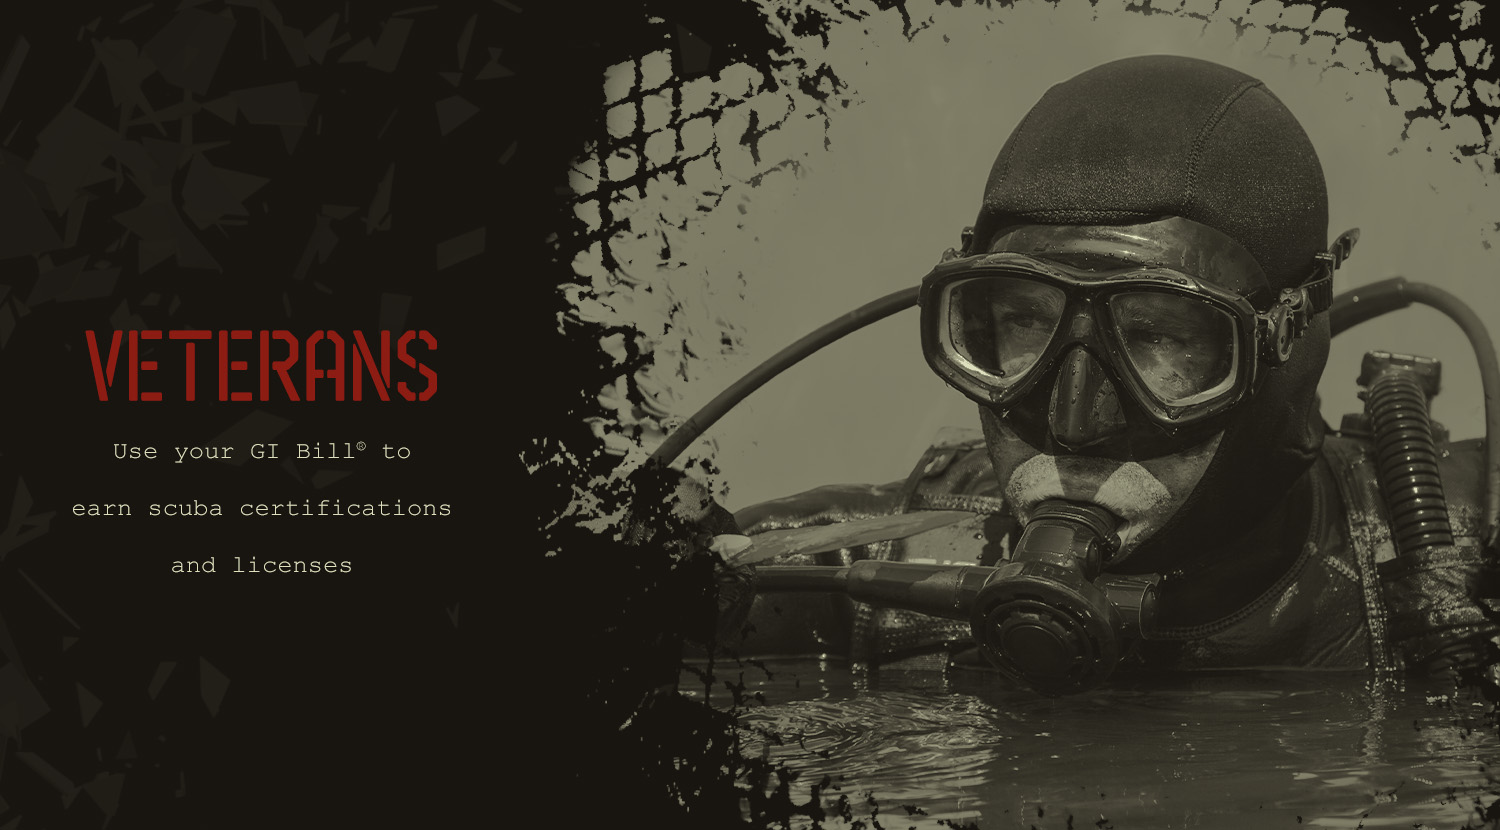 Veterans - Use your GI Bill to earn scuba certifications and licenses